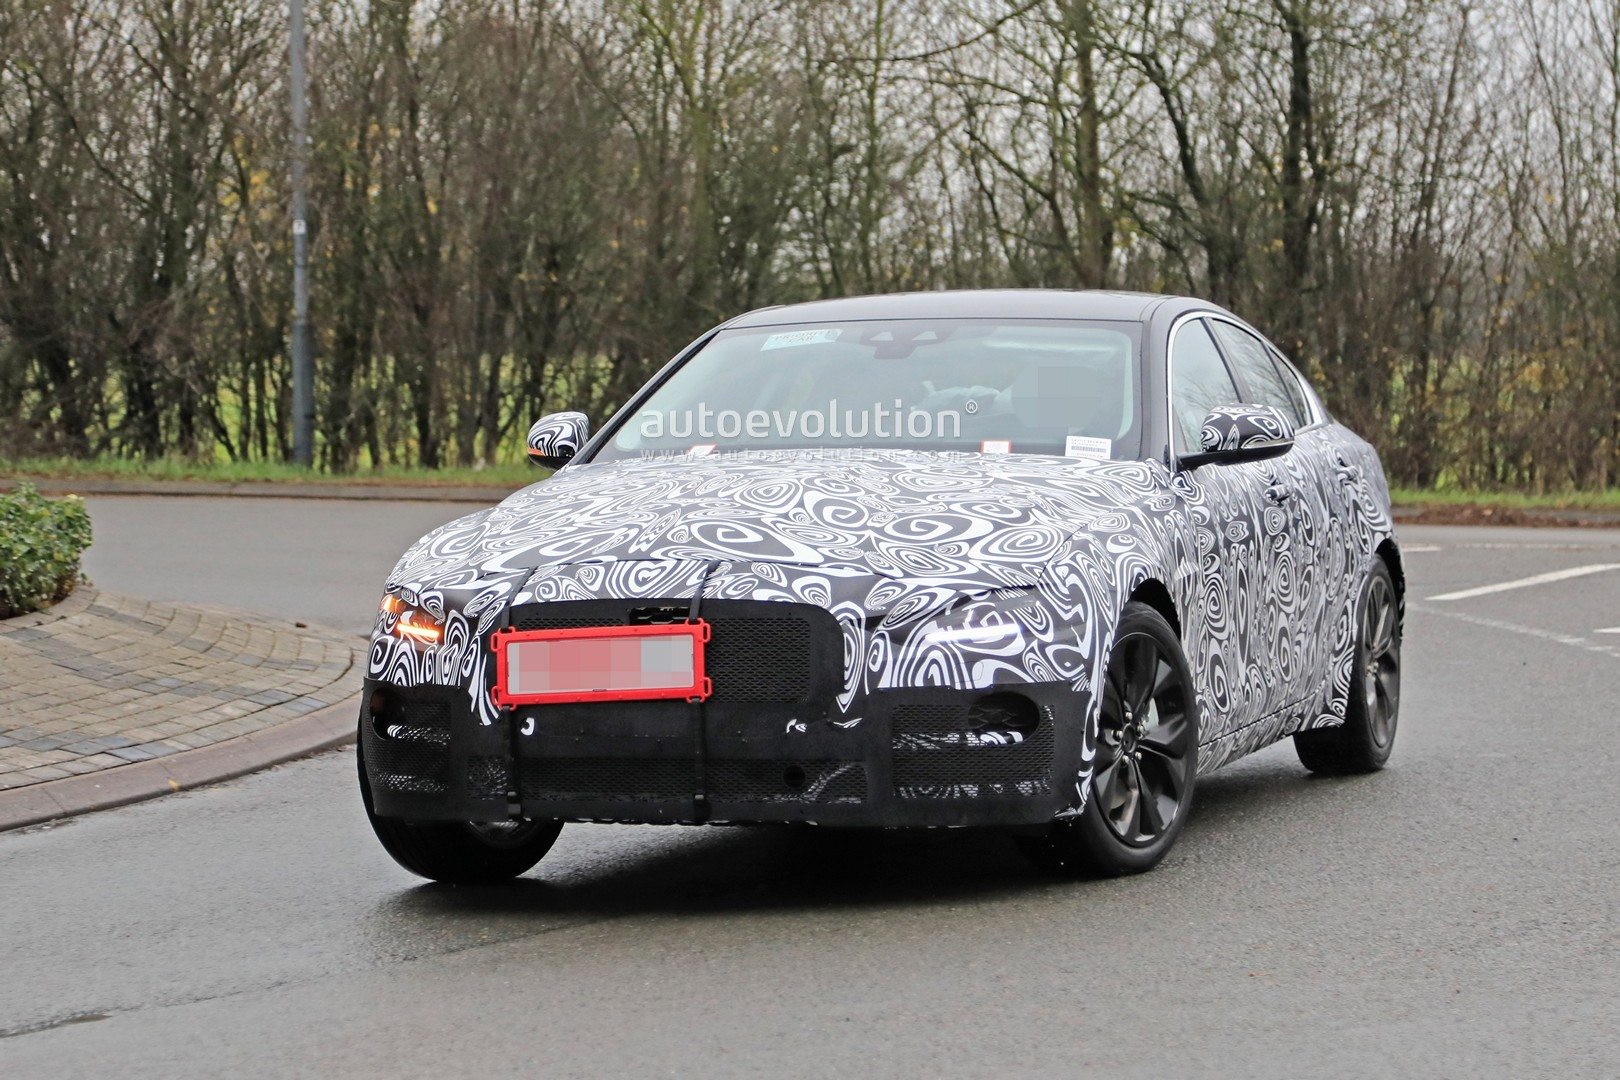 2020 Jaguar Xe Facelift Spied In Detail On Uk Roads